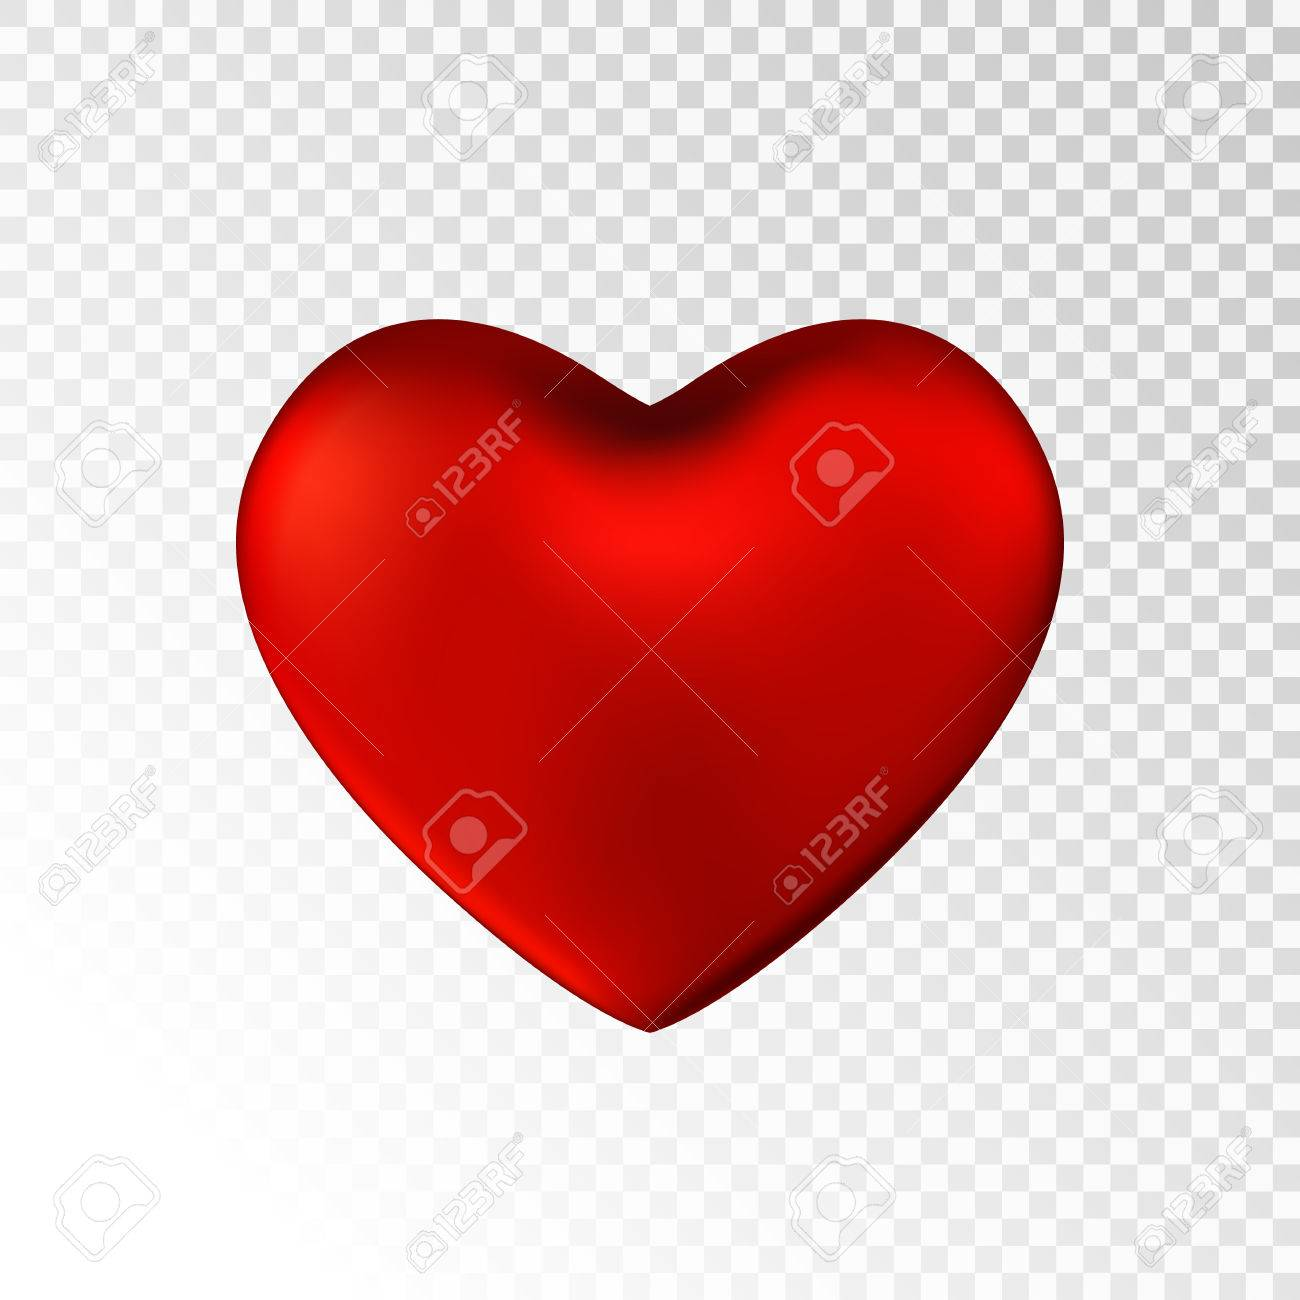 Red Heart Isolated On Transparent Background Happy Valentine S